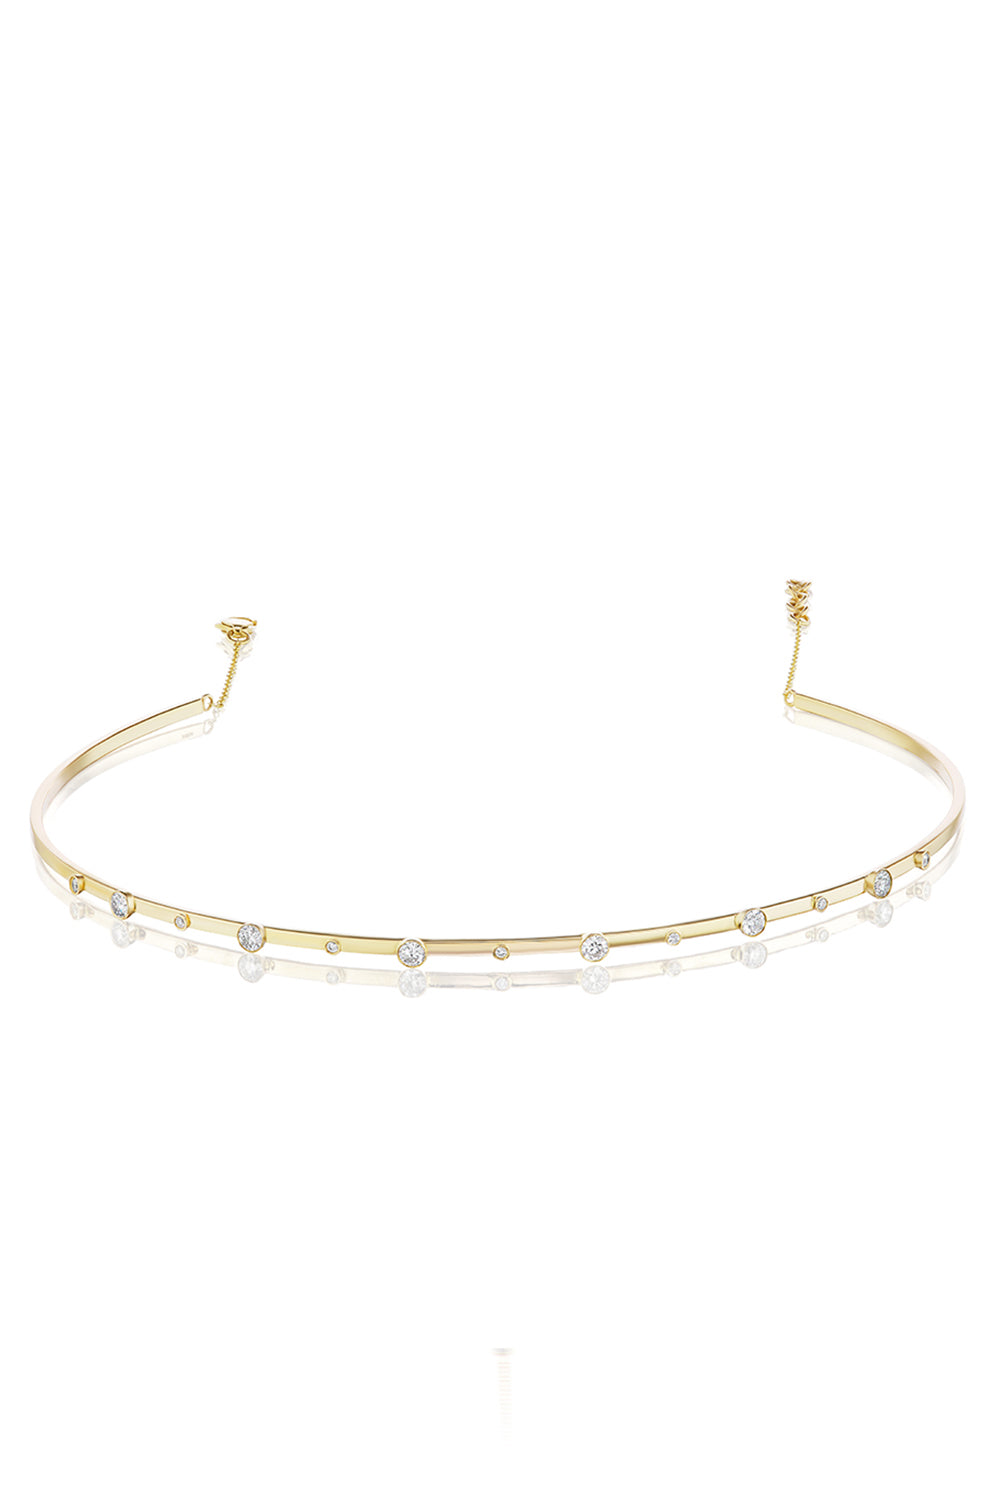 Bezel Stand Out Choker in Yellow Gold